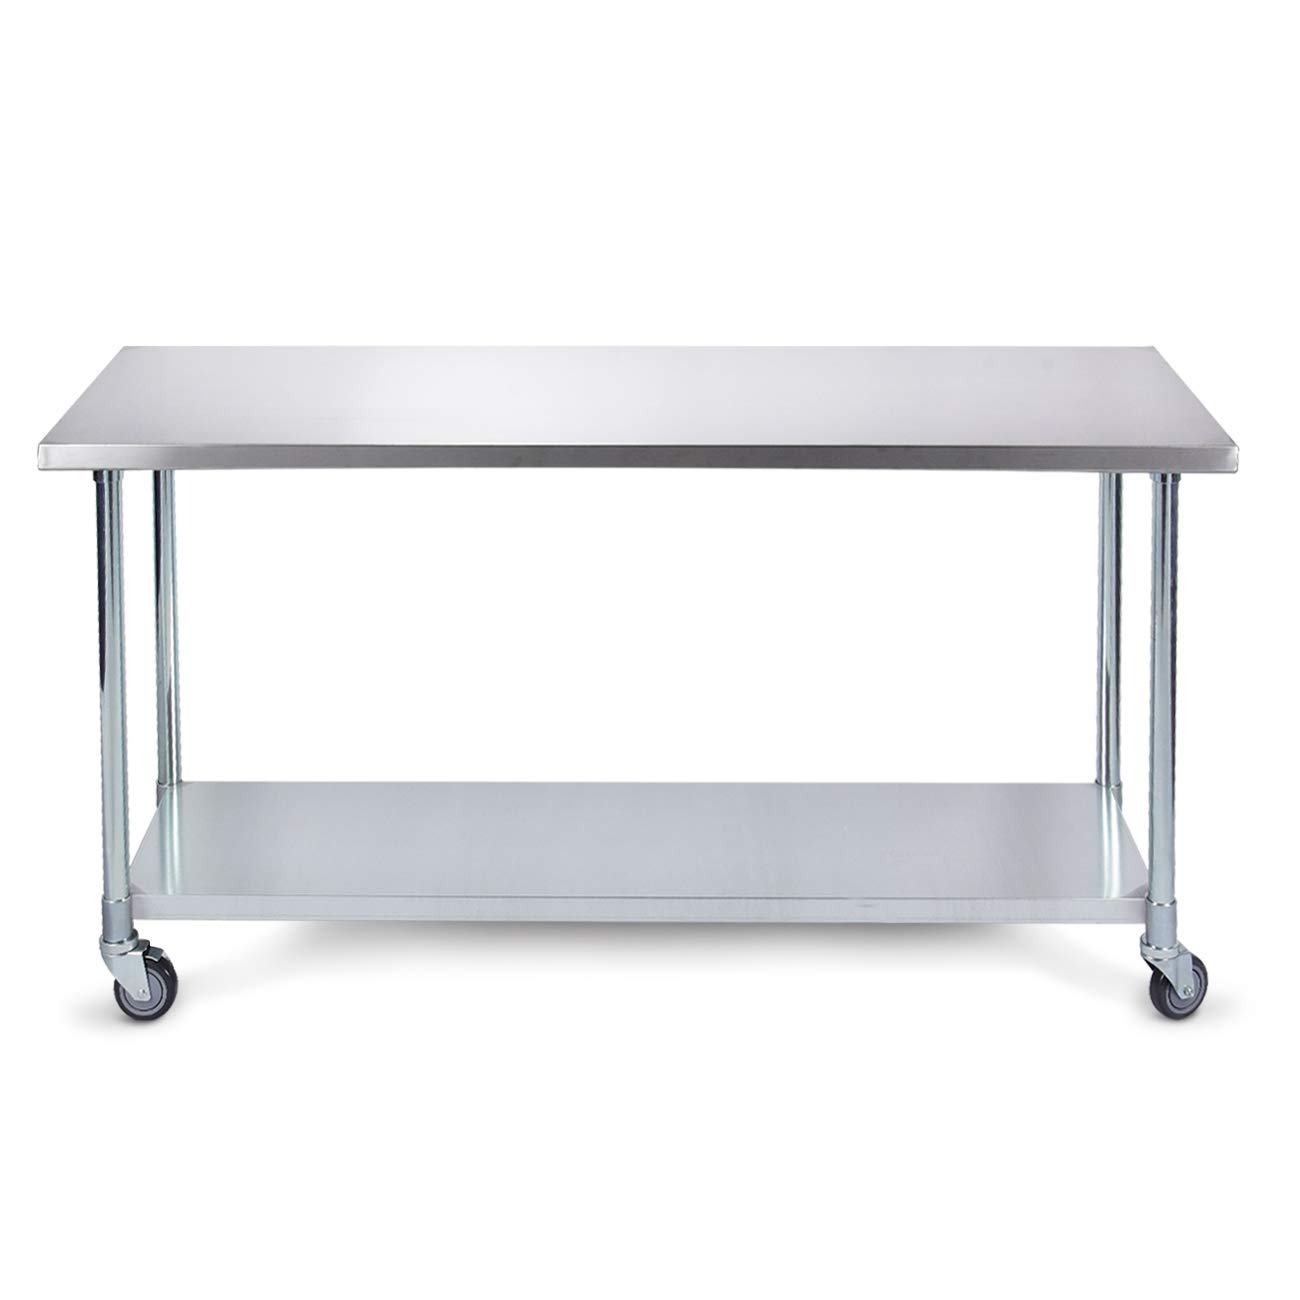 ARKSEN 36'' x 24'' Heavy Duty Work NSF Utility Prep Stainless Steel Table w/Wheels and Undershelf